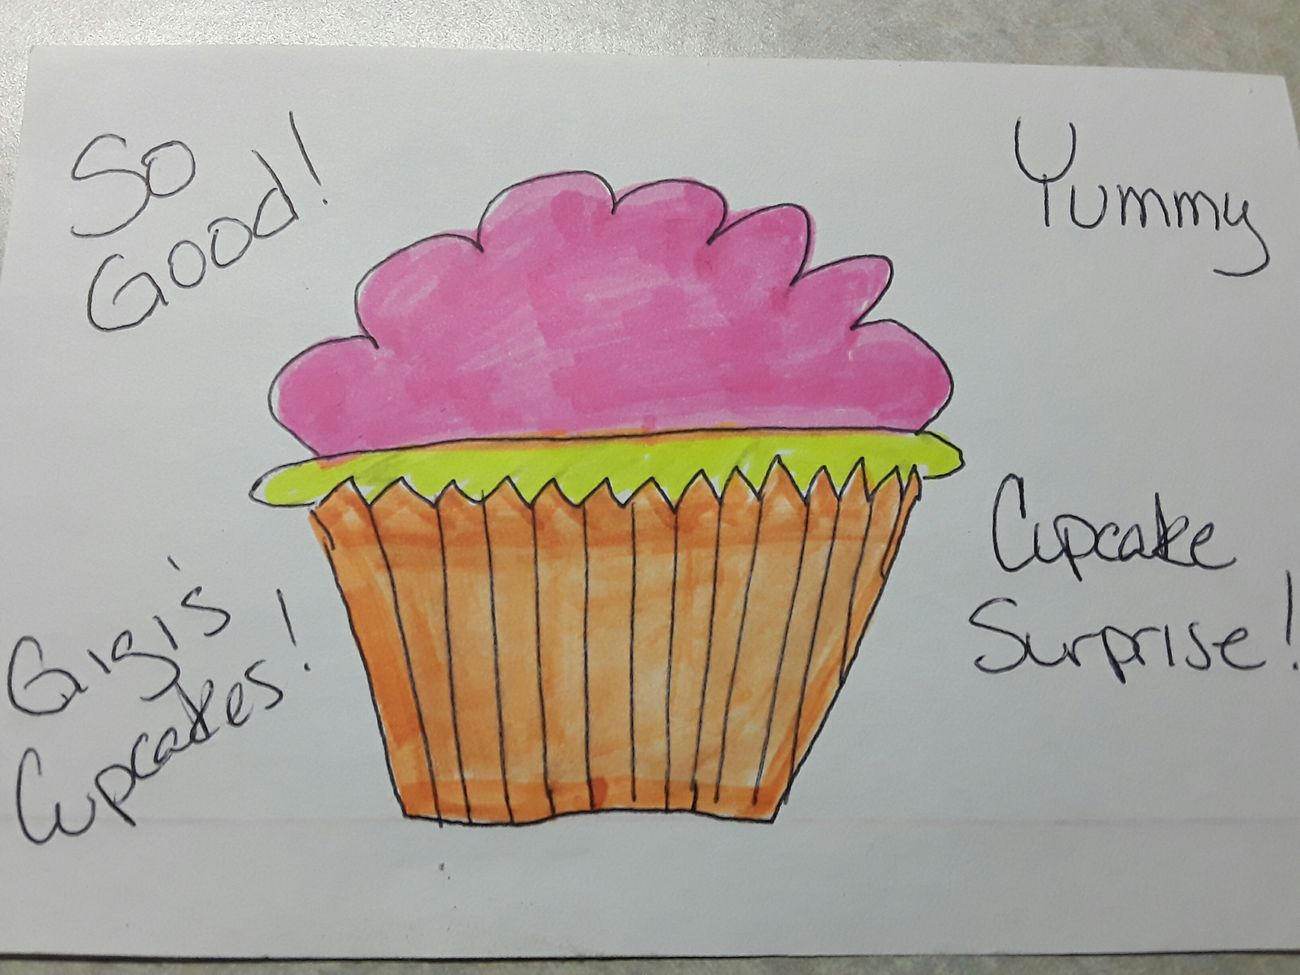 Day 74: Cupcake Surprise (apologies for the late post. I was so exhausted yesterday I fell asleep almost as soon as I got home) Today at work a Gigi's cupcake appeared on my desk. I was so excited to eat it that I forgot to take a photo, so here's my attempt to draw it. Guess I'll stick with photography! 365DaysOfAwesomeness PhotographyProject Day74 Cupcakes Drawing Gigiscupcake